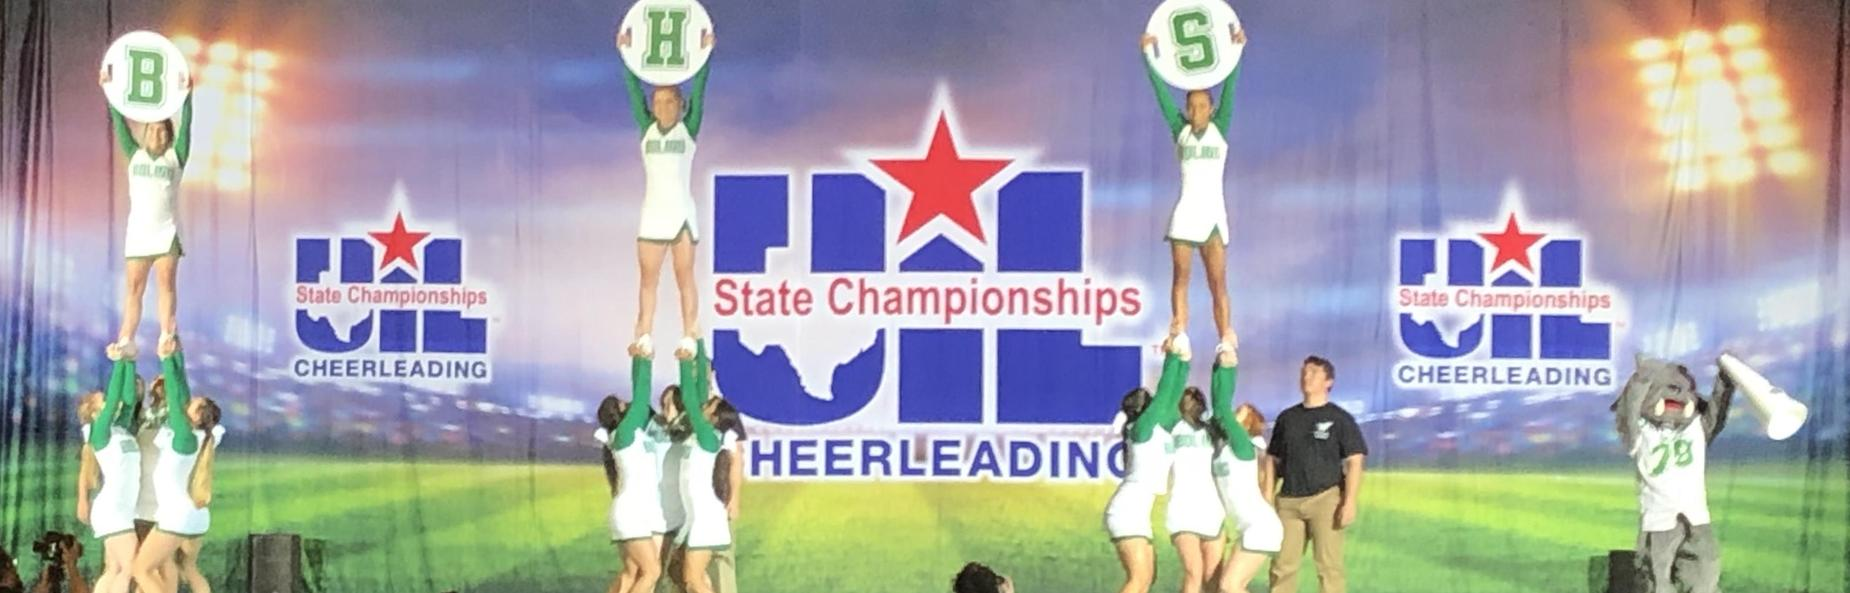 BHS Cheerleaders at state championship contest